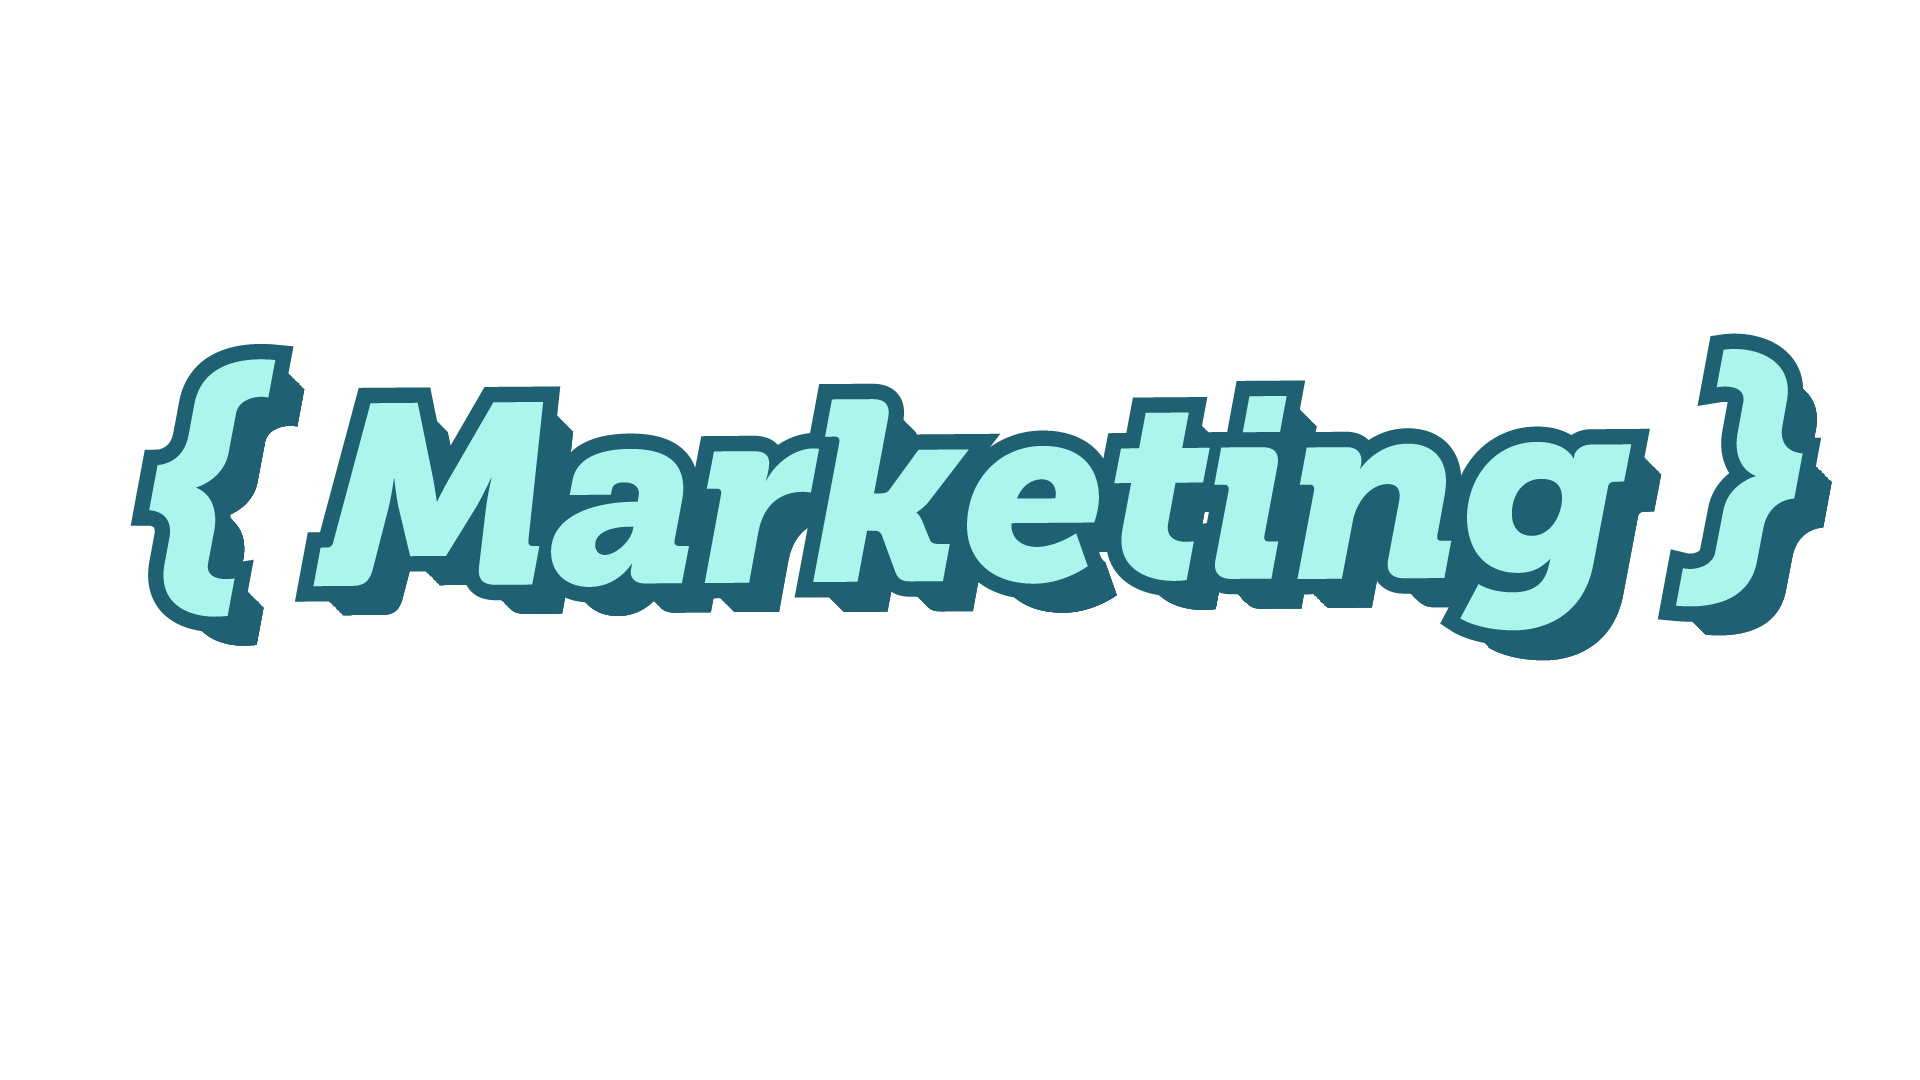 IMAGE: Marketing as a function - benefits of hiring a marketing consultant